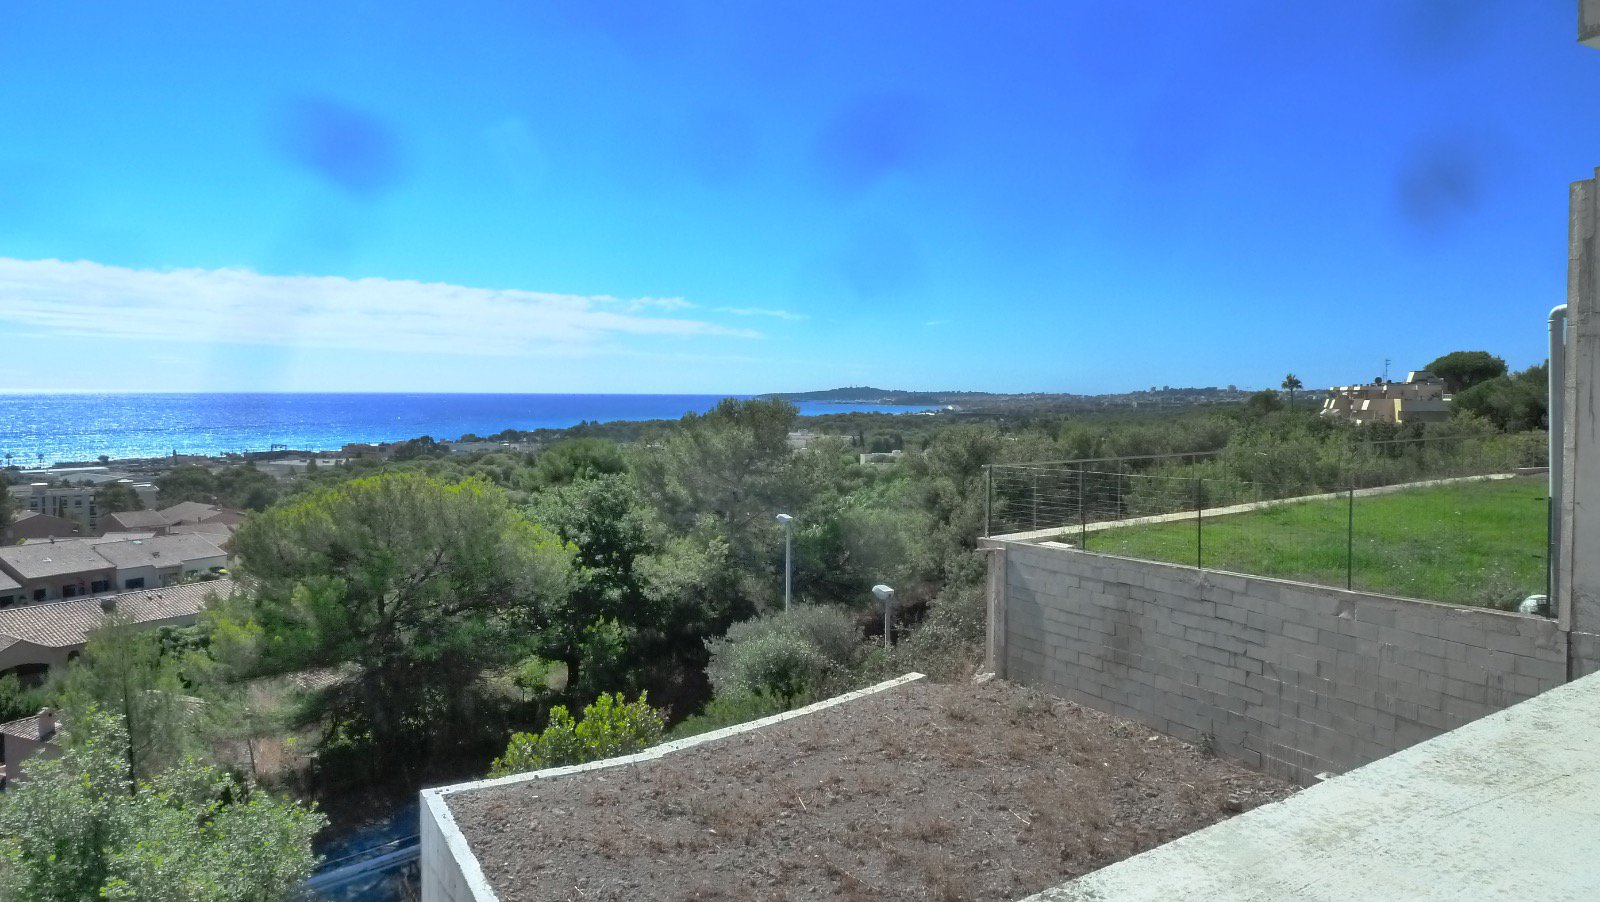 On the Riviera, Sea View Villa, of 400 m2, large ground swimming pool, a complete